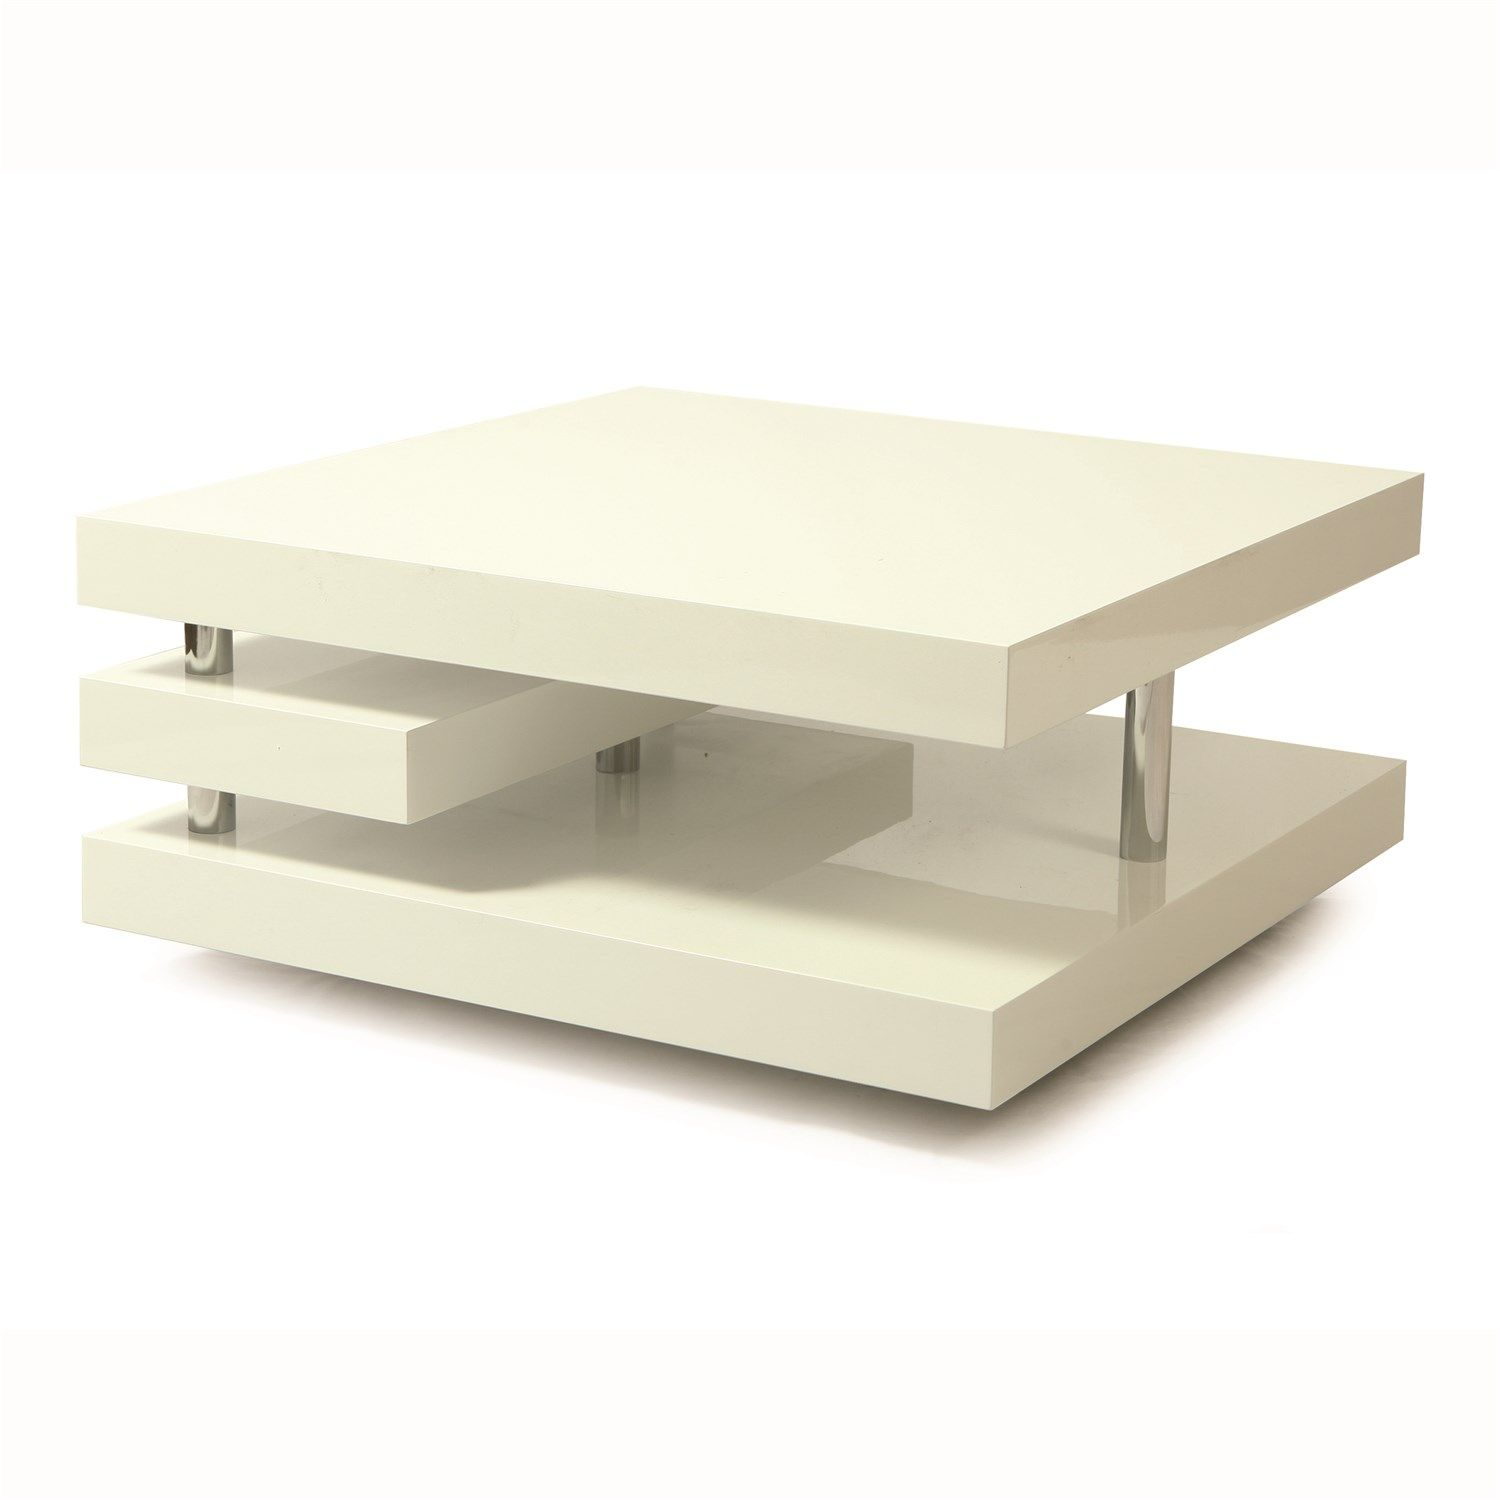 Couchtisch Pastell Pastel Furniture Vy 415 Ch Gw Viceroy Coffee Table In Chrome White